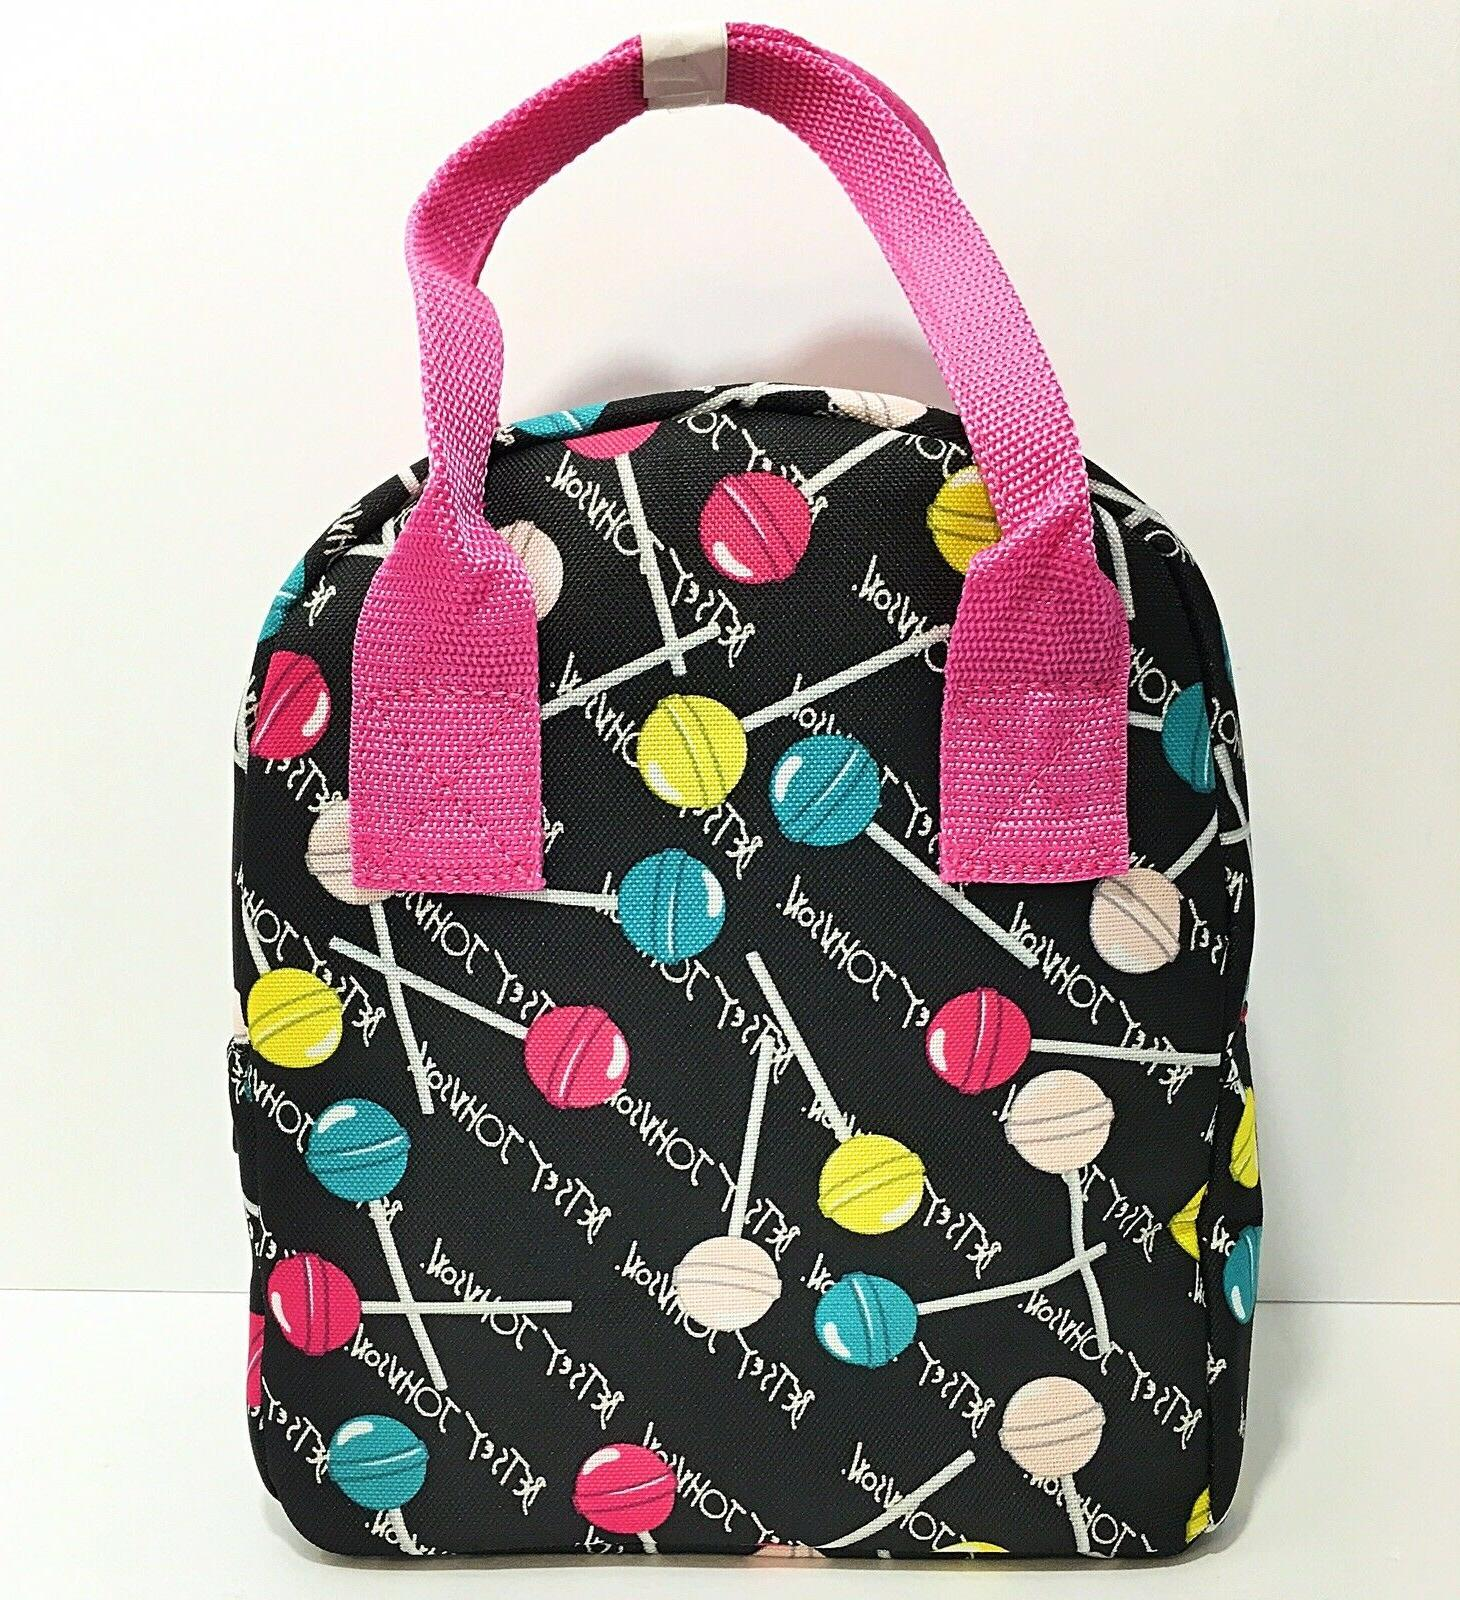 Betsey Johnson Lunch Tote Bag Candy NWT